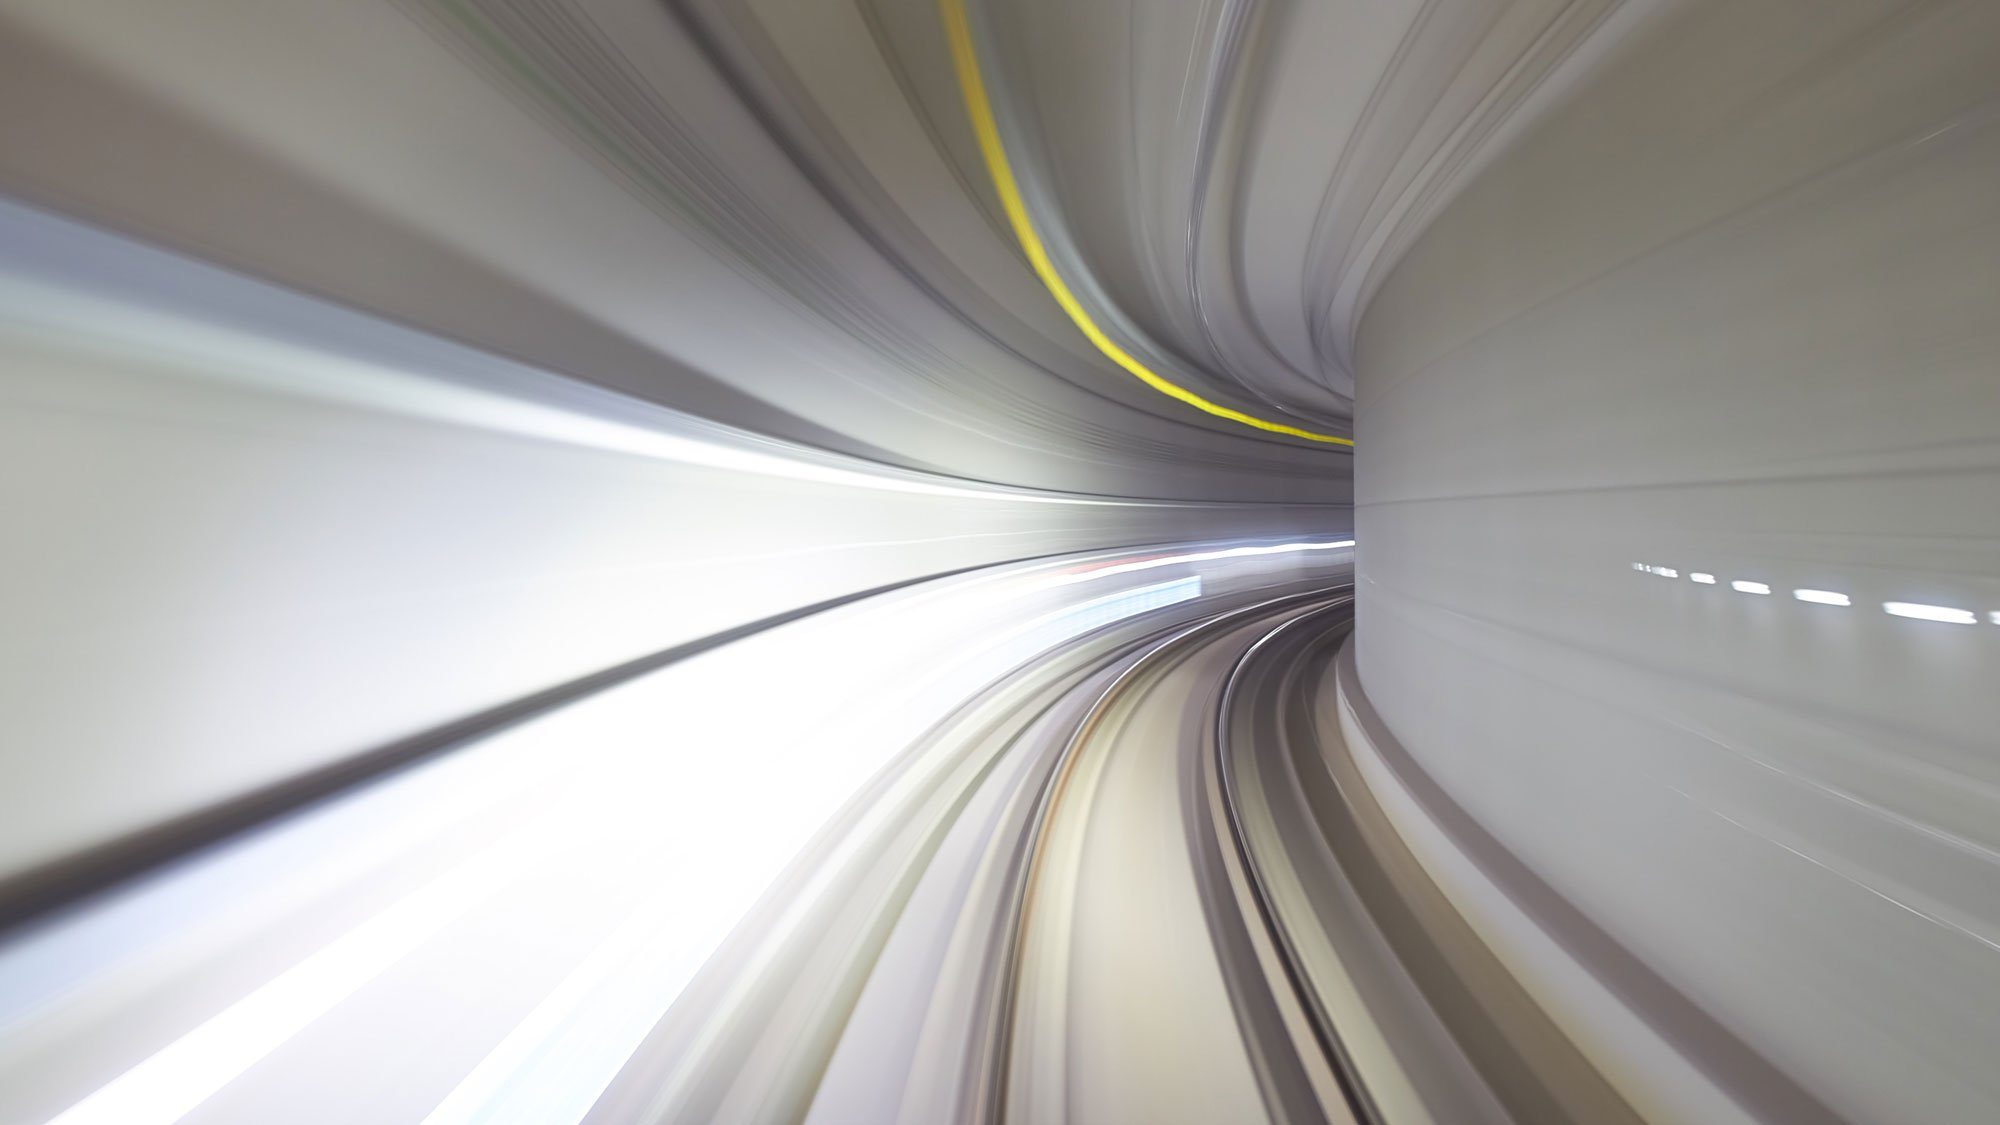 Accelerated growth comes from focused innovation